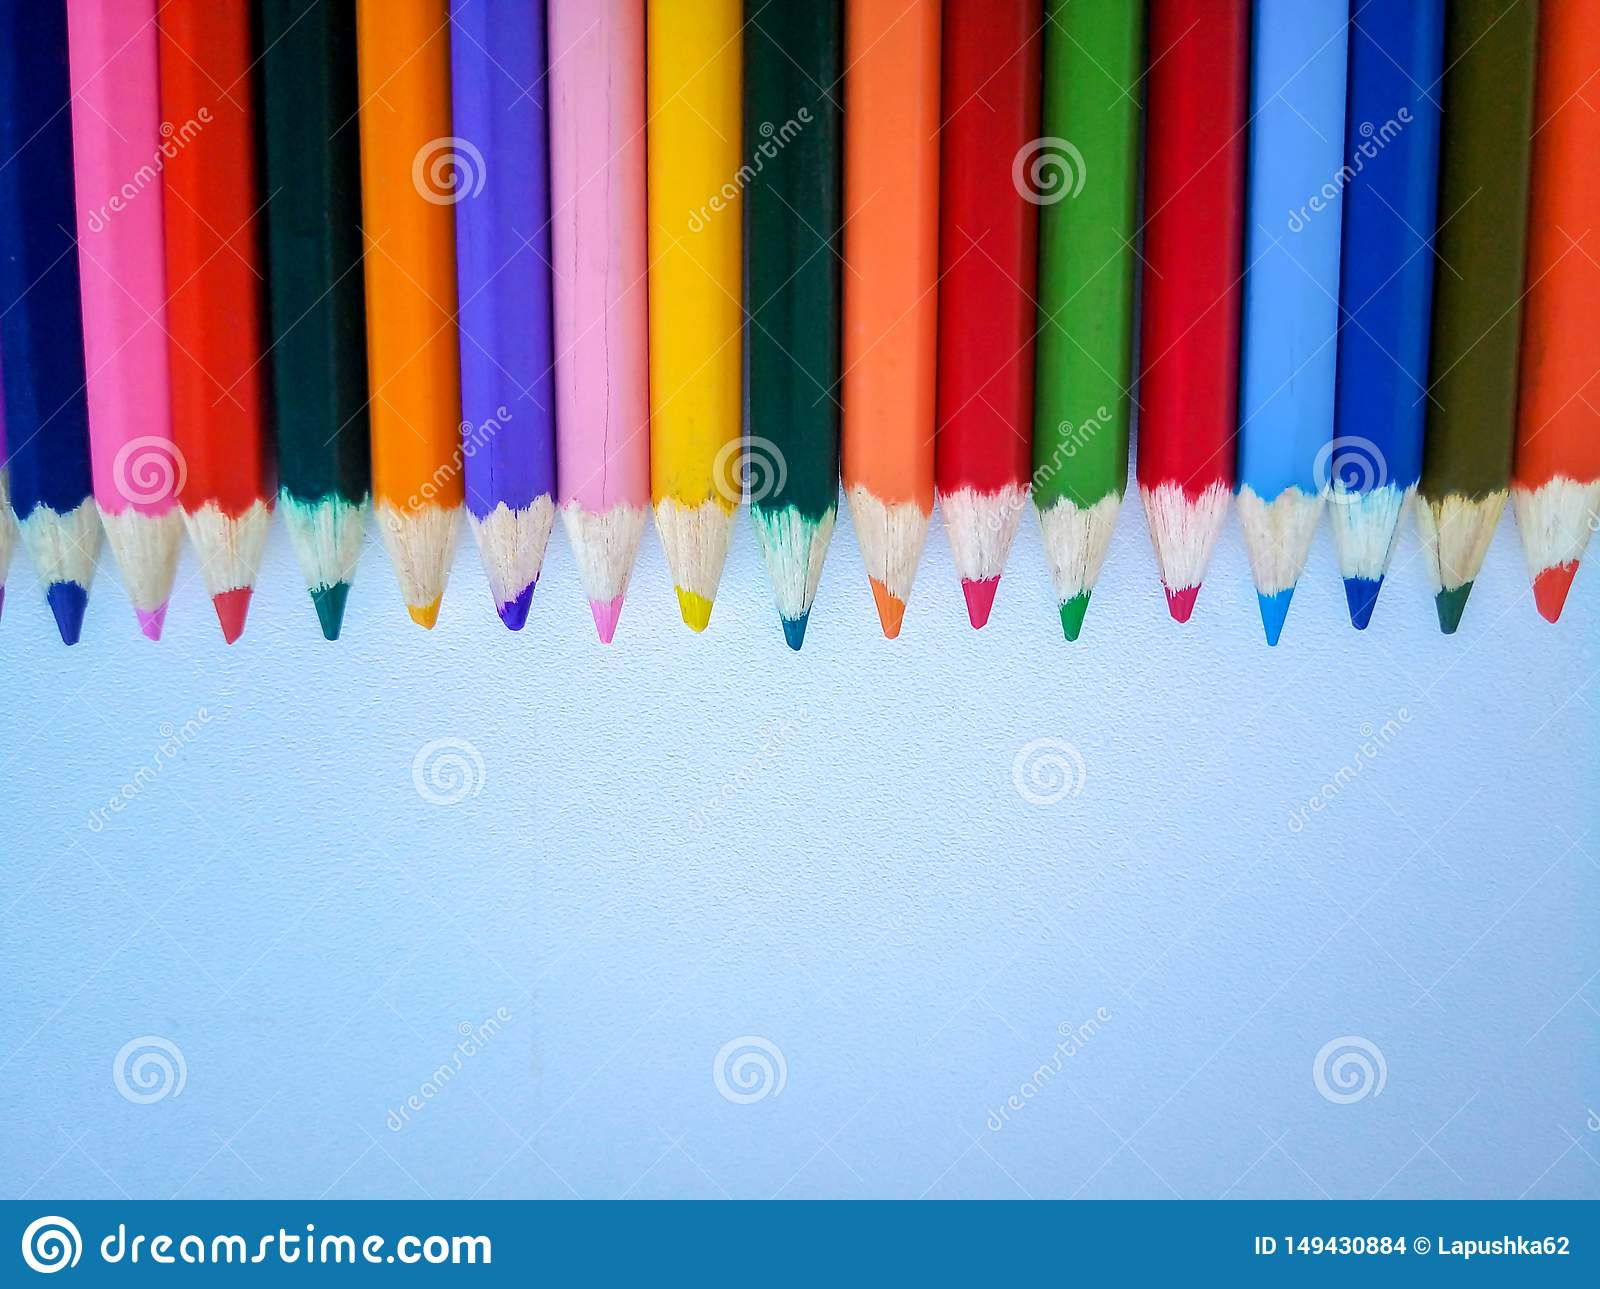 Colored pencils at the top on a white background